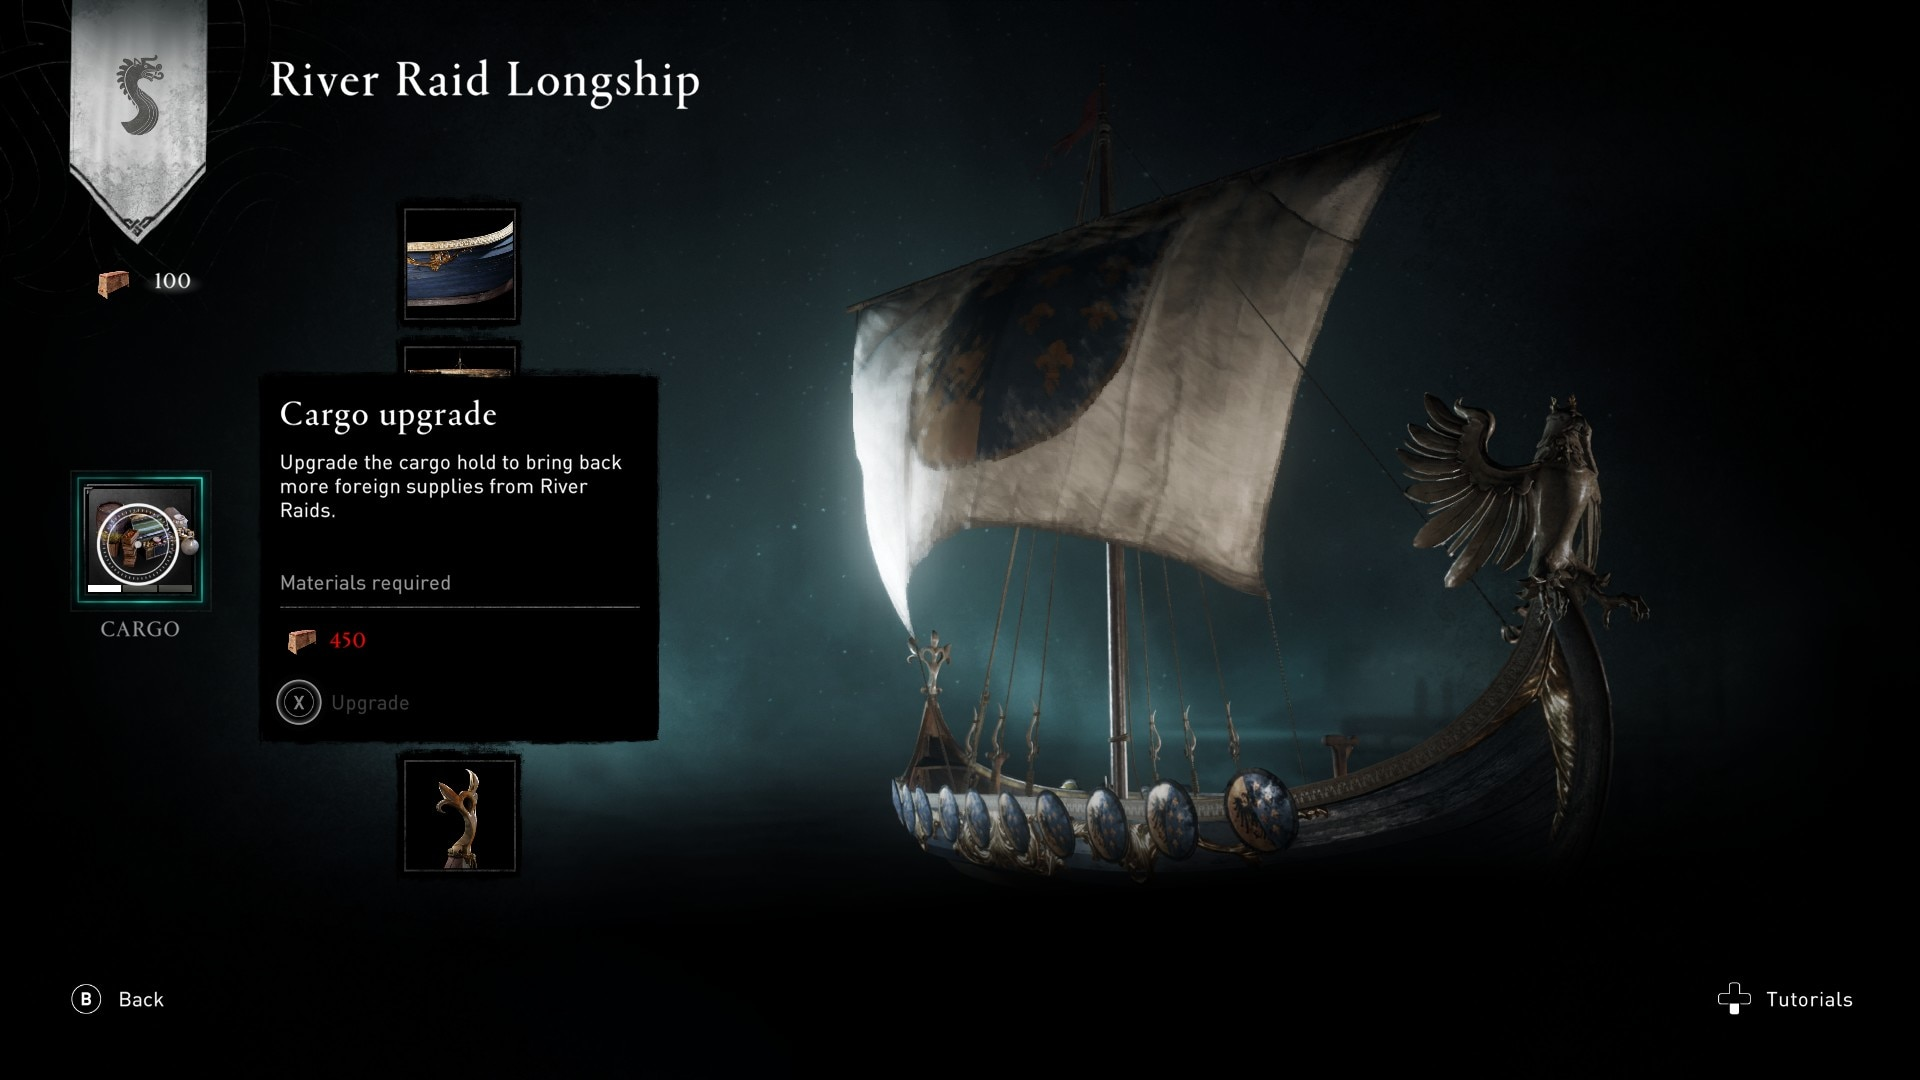 River Raid Longship Cargo Upgrade selected in menu.